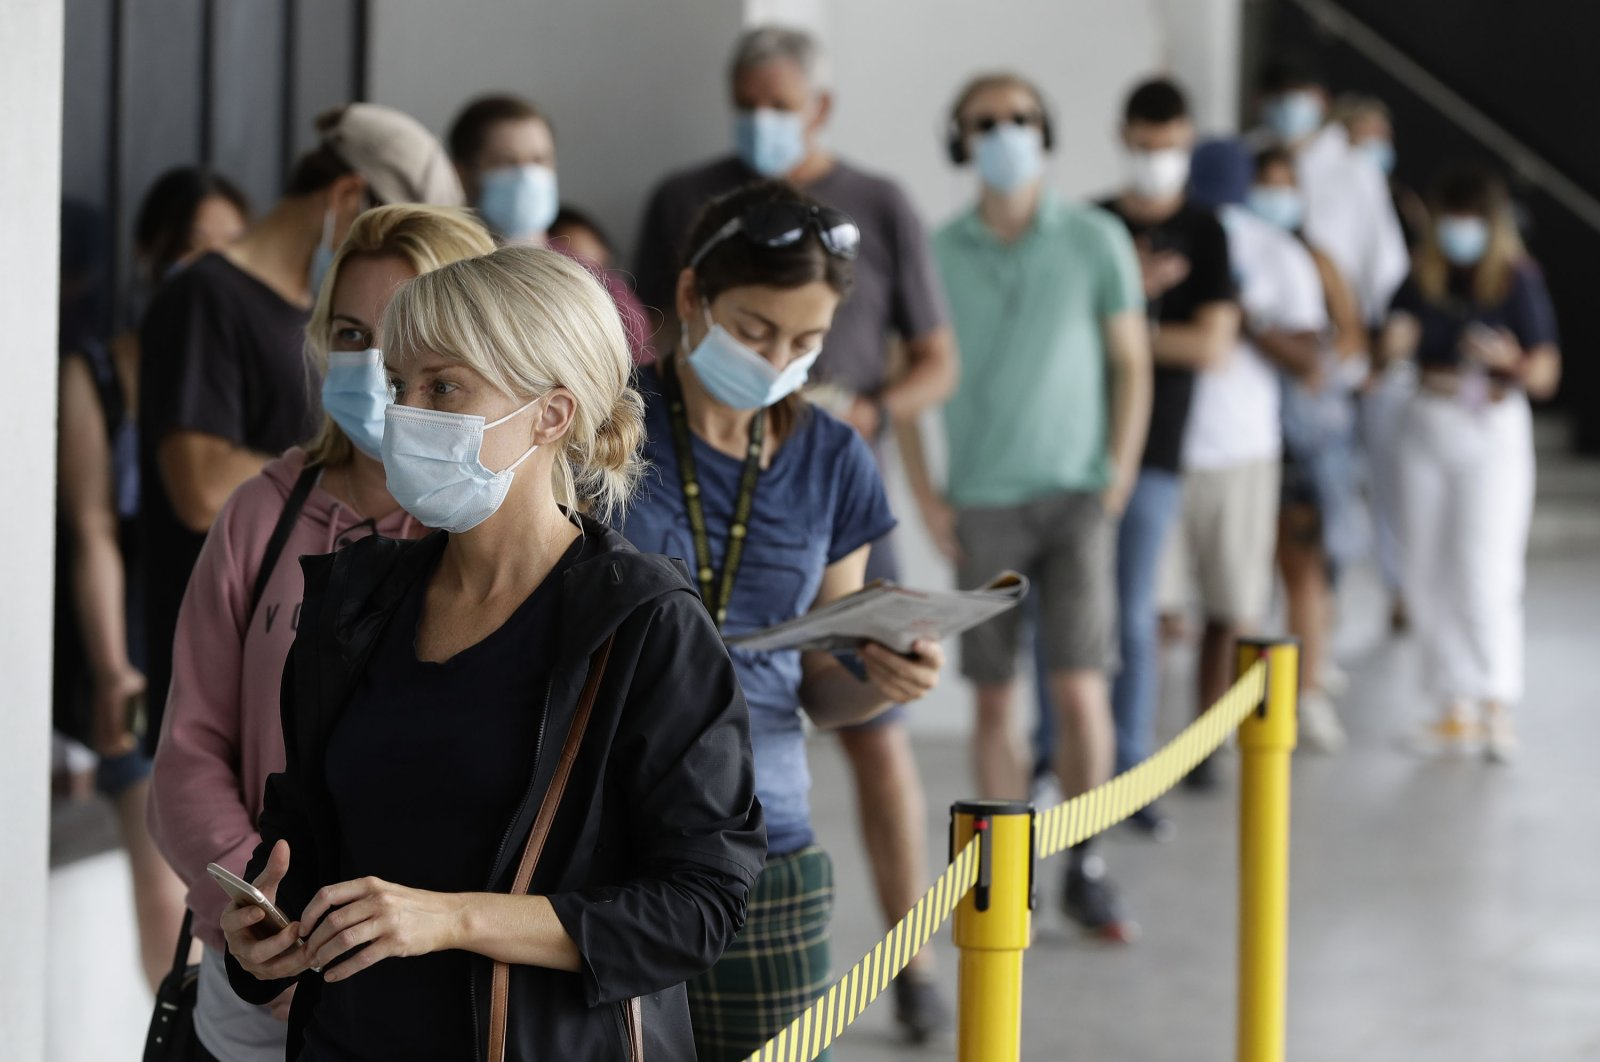 People wait in a line at a COVID-19 testing station on the northern beaches in Sydney, Australia, Dec. 21, 2020. (AP Photo)